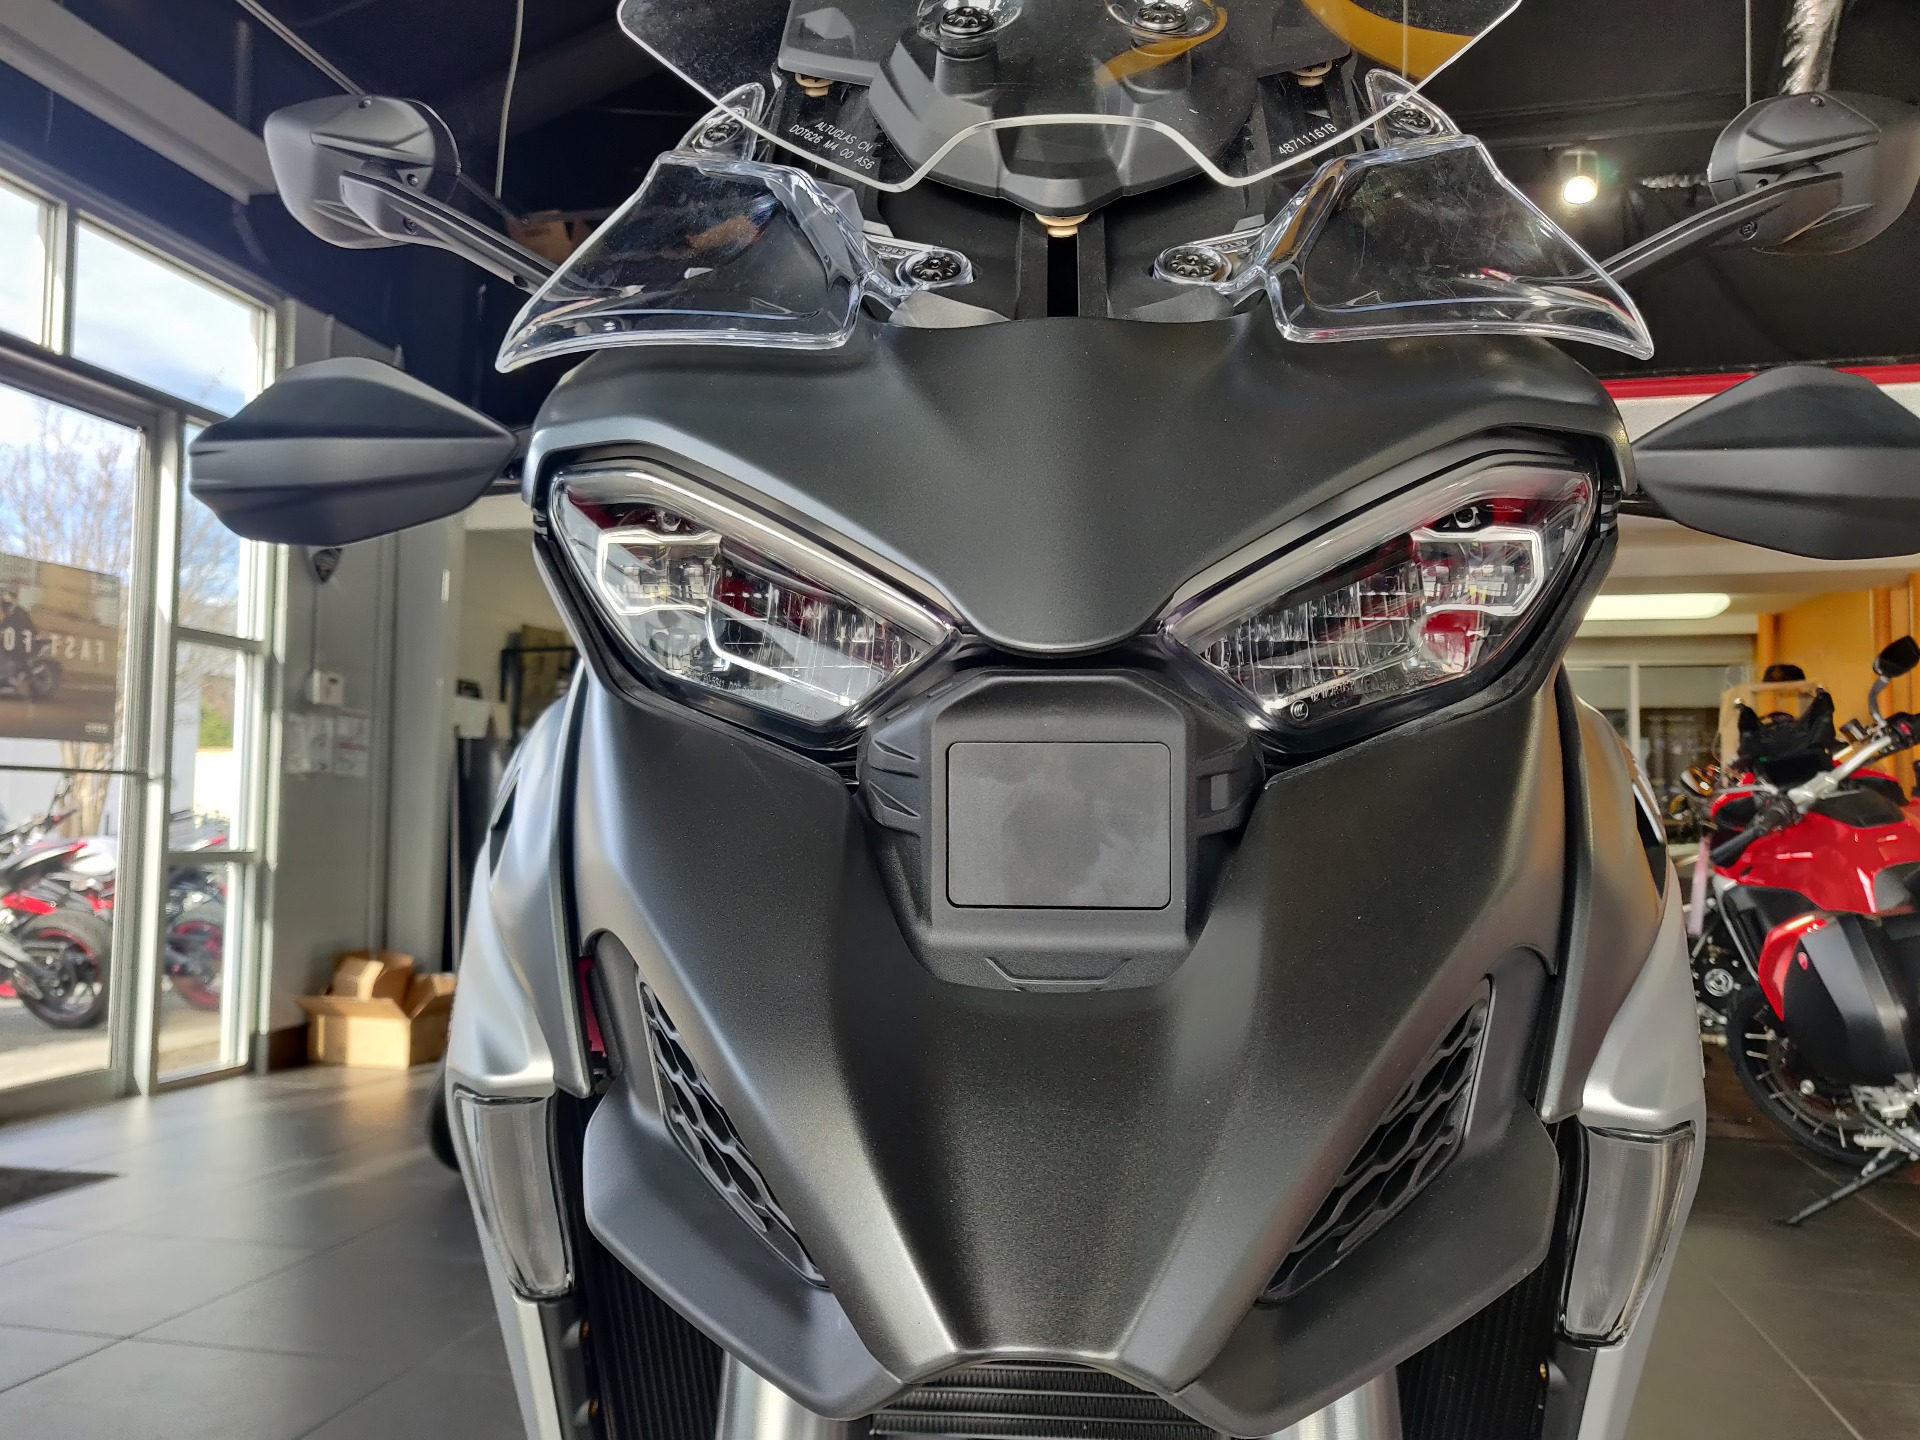 2021 Ducati Multistrada V4S in Greenville, South Carolina - Photo 14